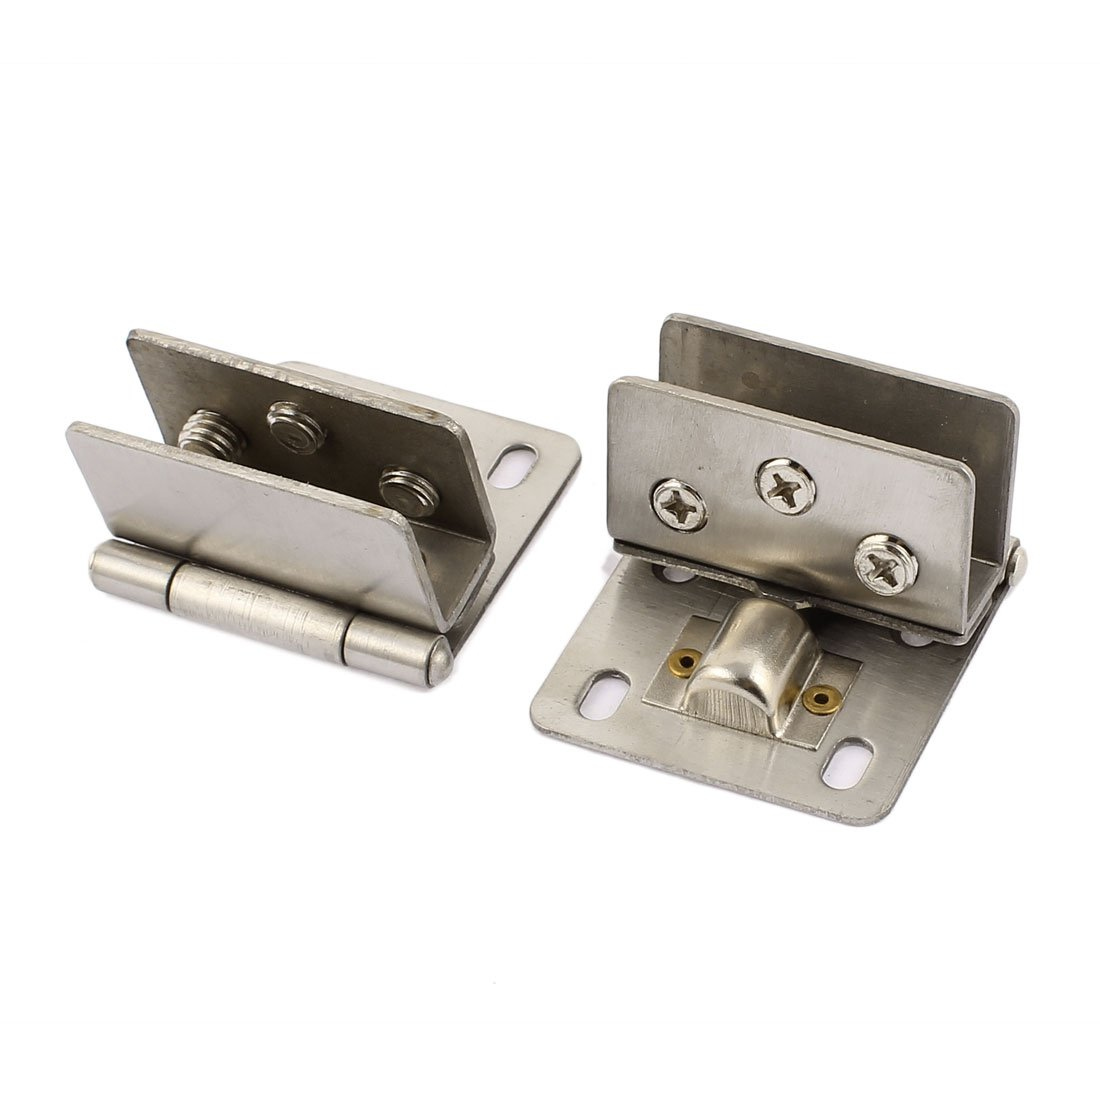 uxcell Cabinet Door Catch Hinge 2pcs for 8.5mm-13mm Thickness Glass Silver Tone